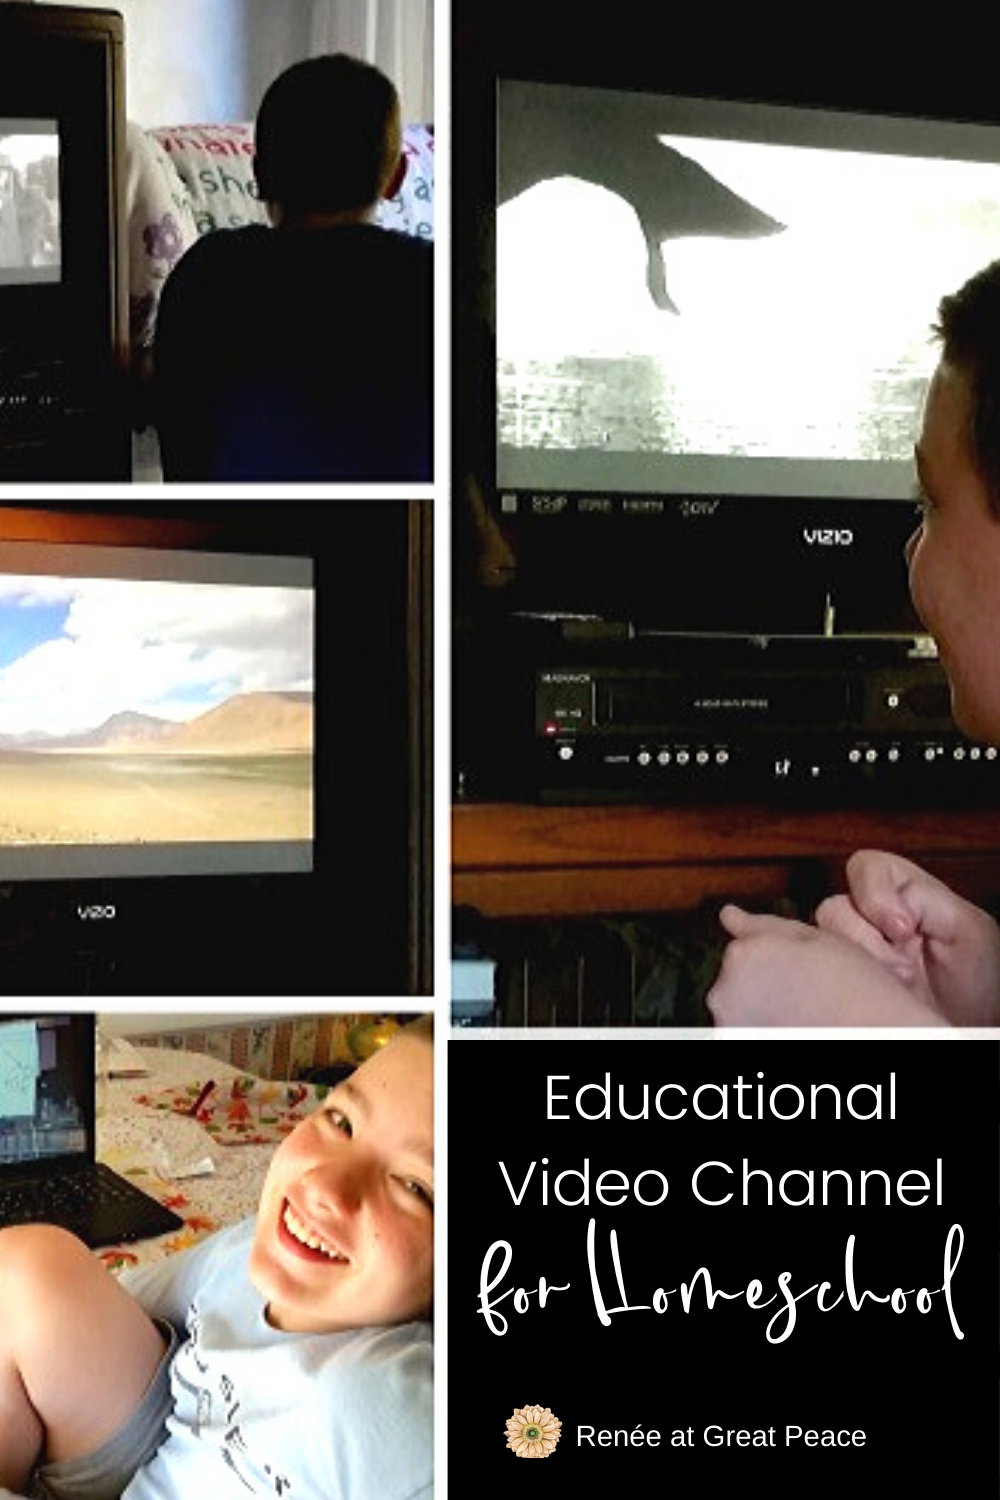 Educational Video Channel | Renee at Great Peace #educational #homeschool #video #videoschooling #curiositystream